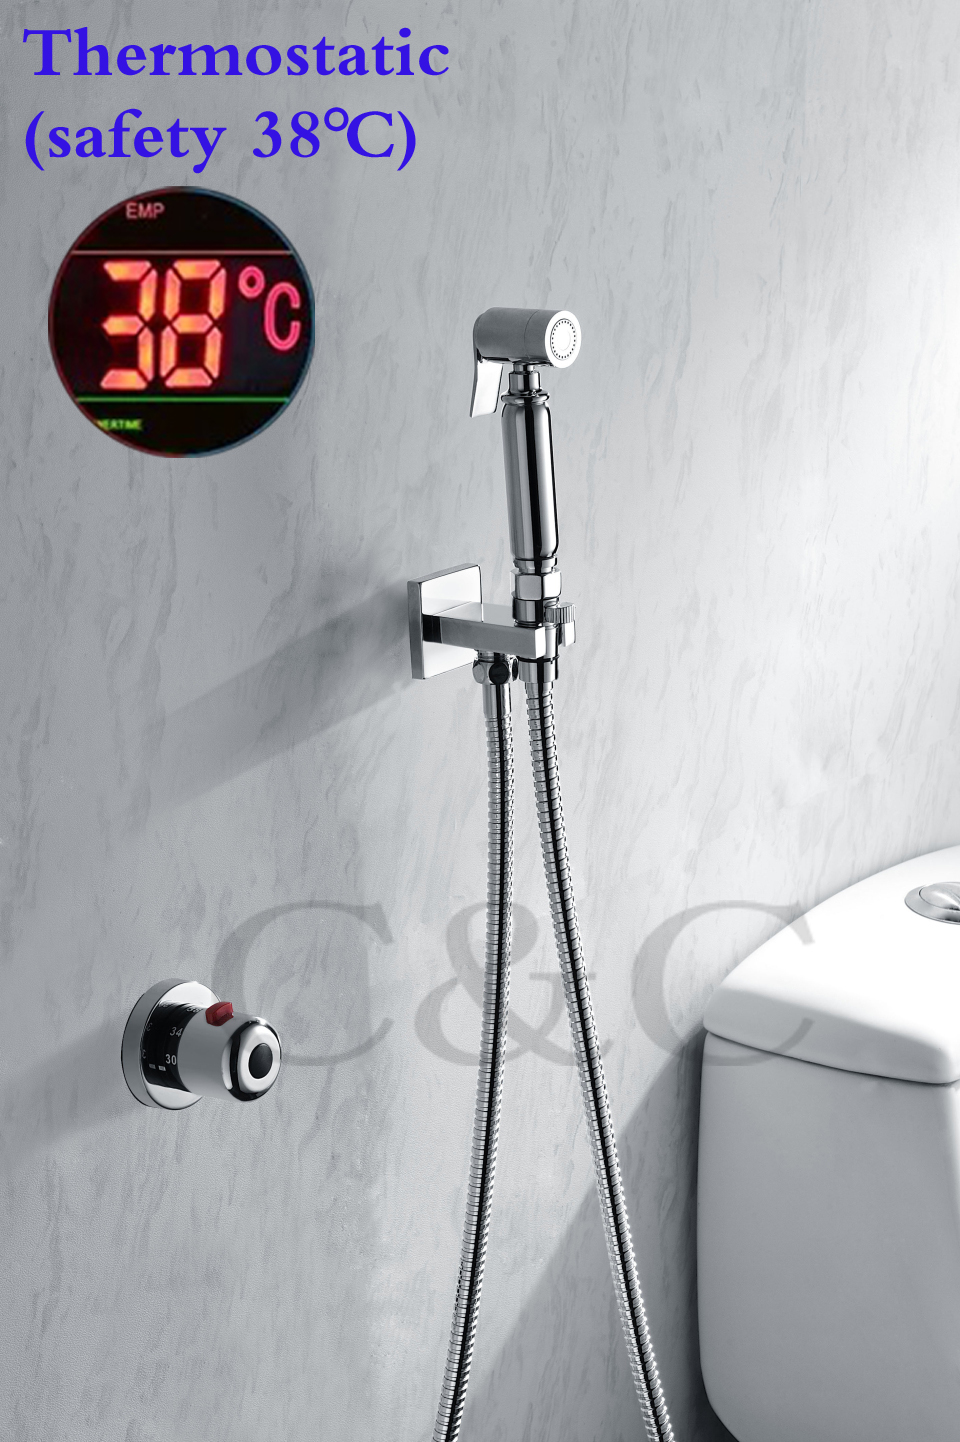 Thermostatic Handheld Toilet Bidet Faucet Hygiene Personal Cleaning ...